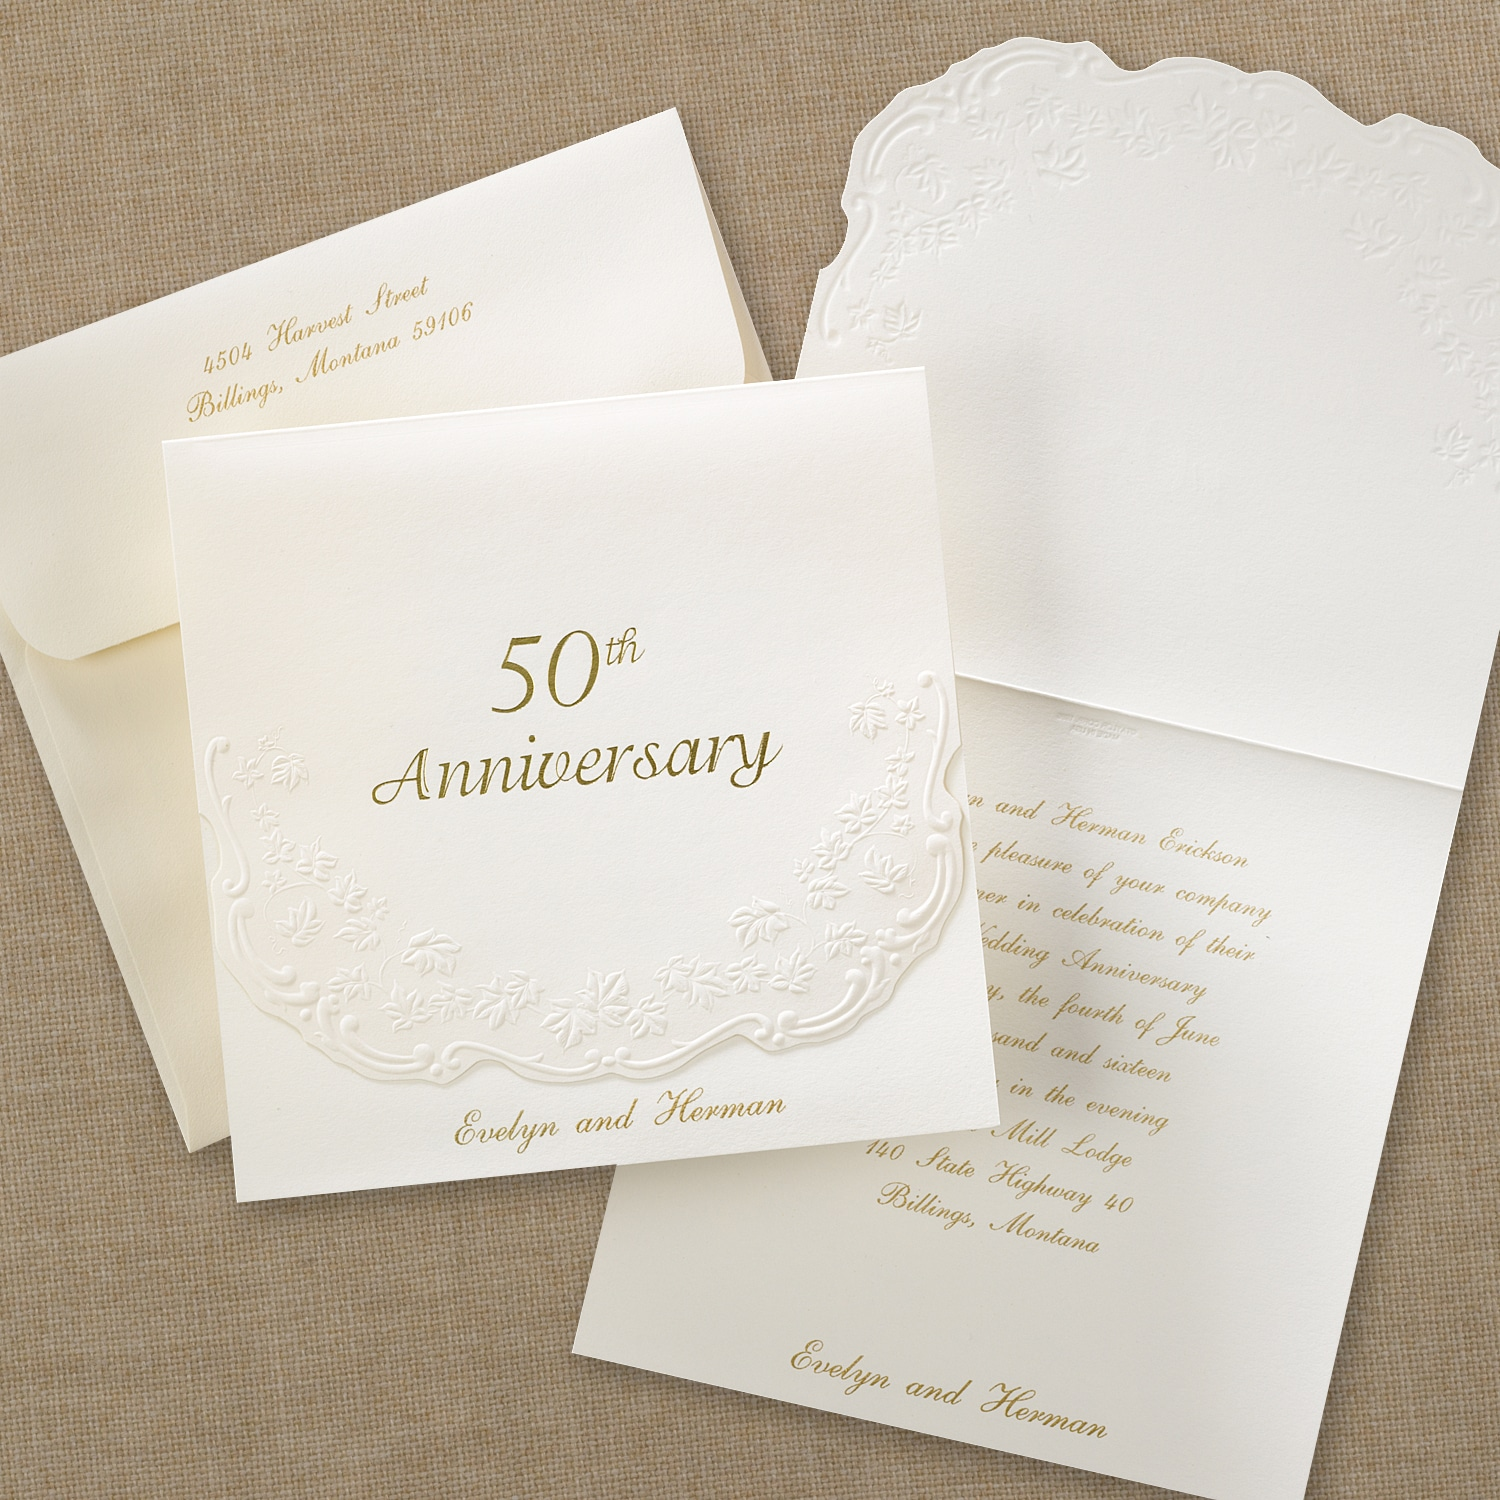 50th anniversary invitation anniversary invitations carlson 50th anniversary invitation stopboris Image collections